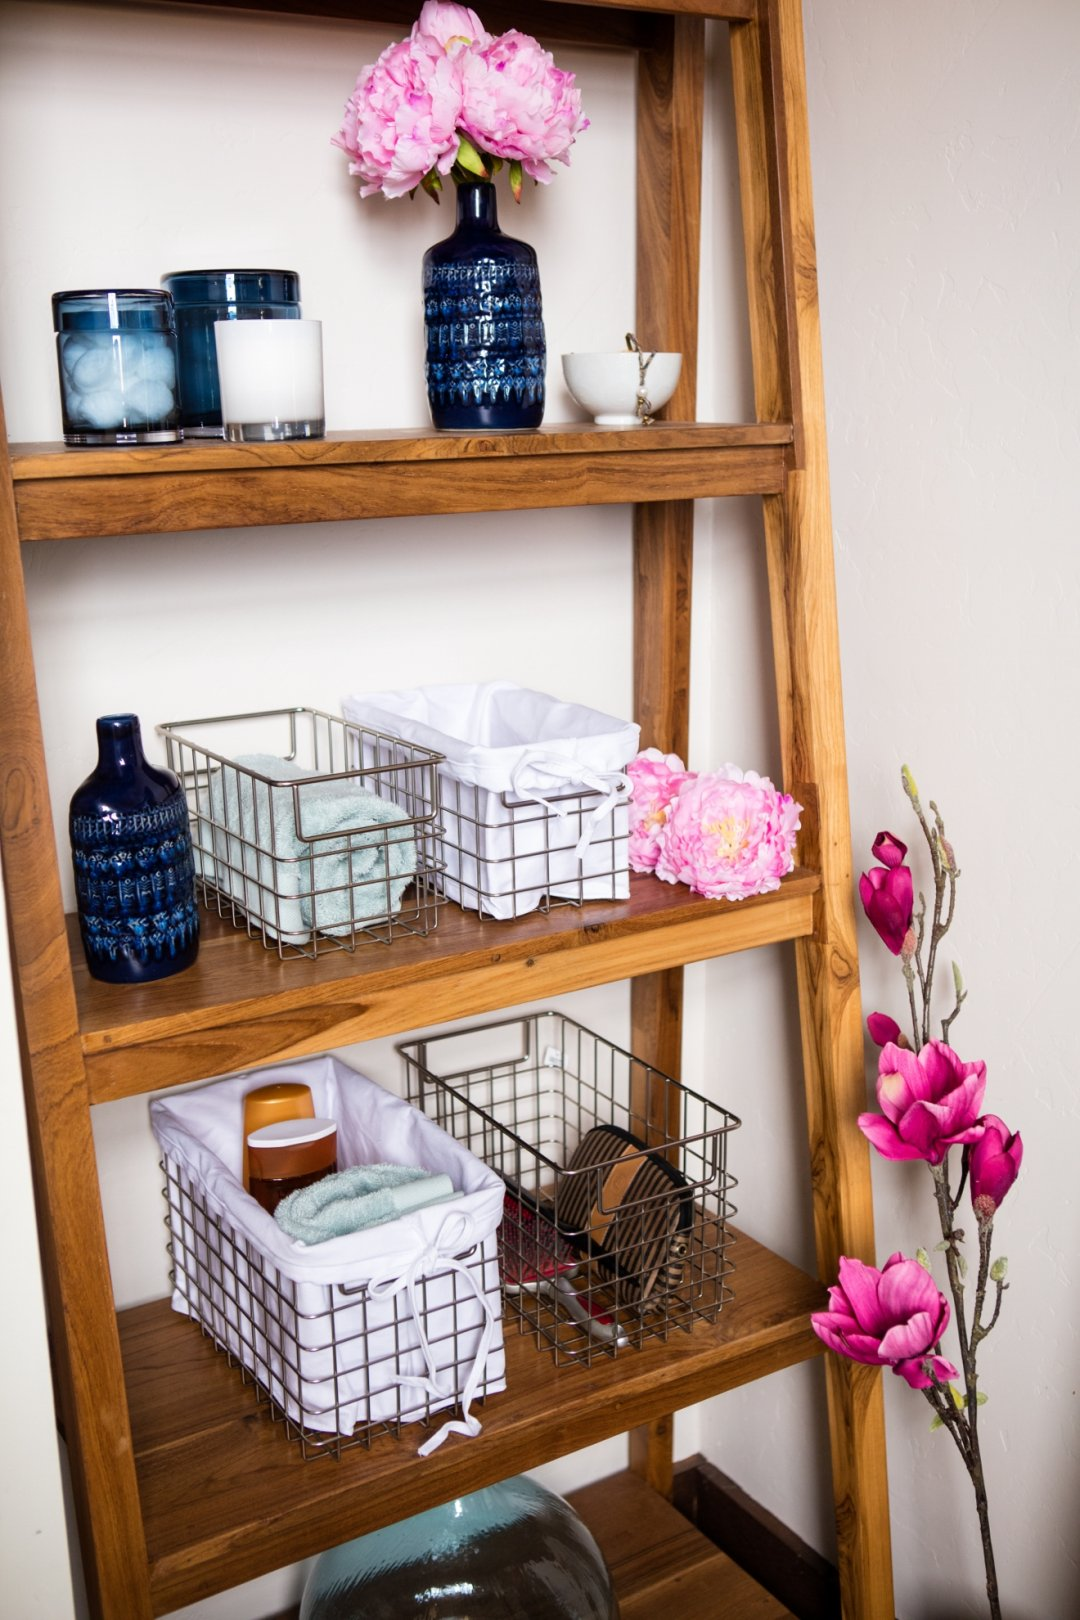 Wooden shelf with wire baskets and glass canisters for organization